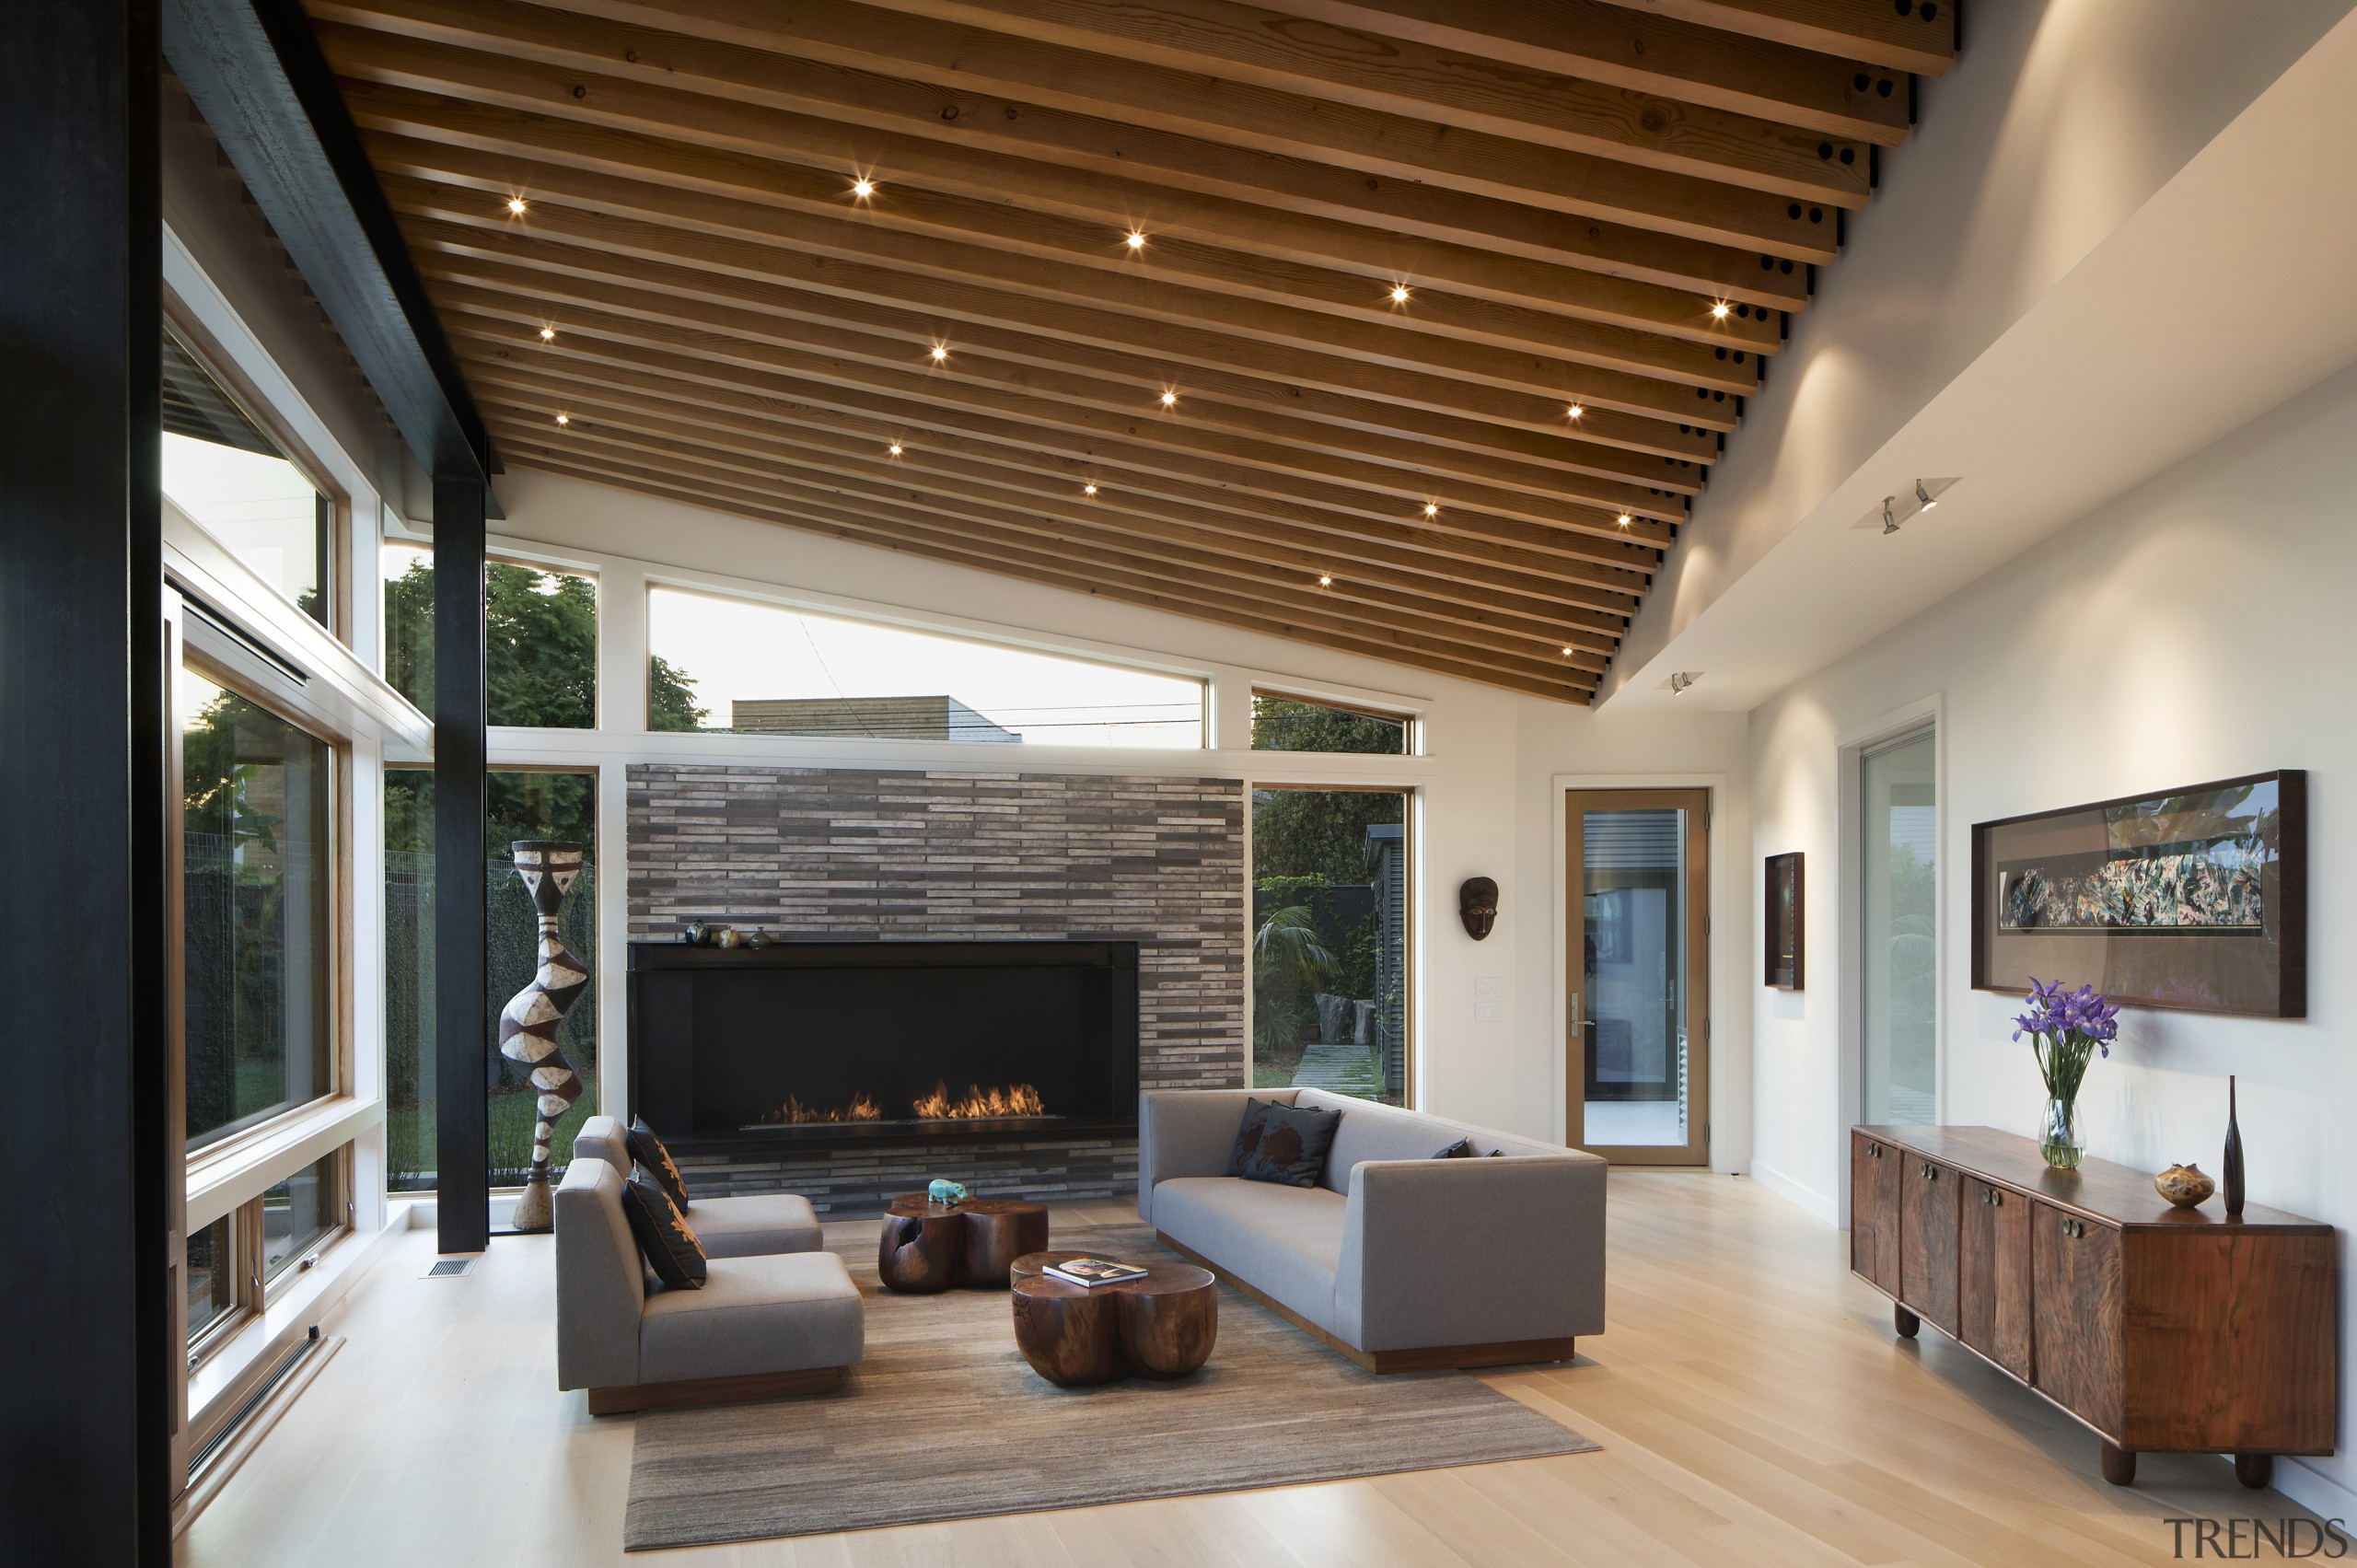 The living pavilion itself is constructed with wood, architecture, ceiling, daylighting, house, interior design, living room, real estate, brown, gray